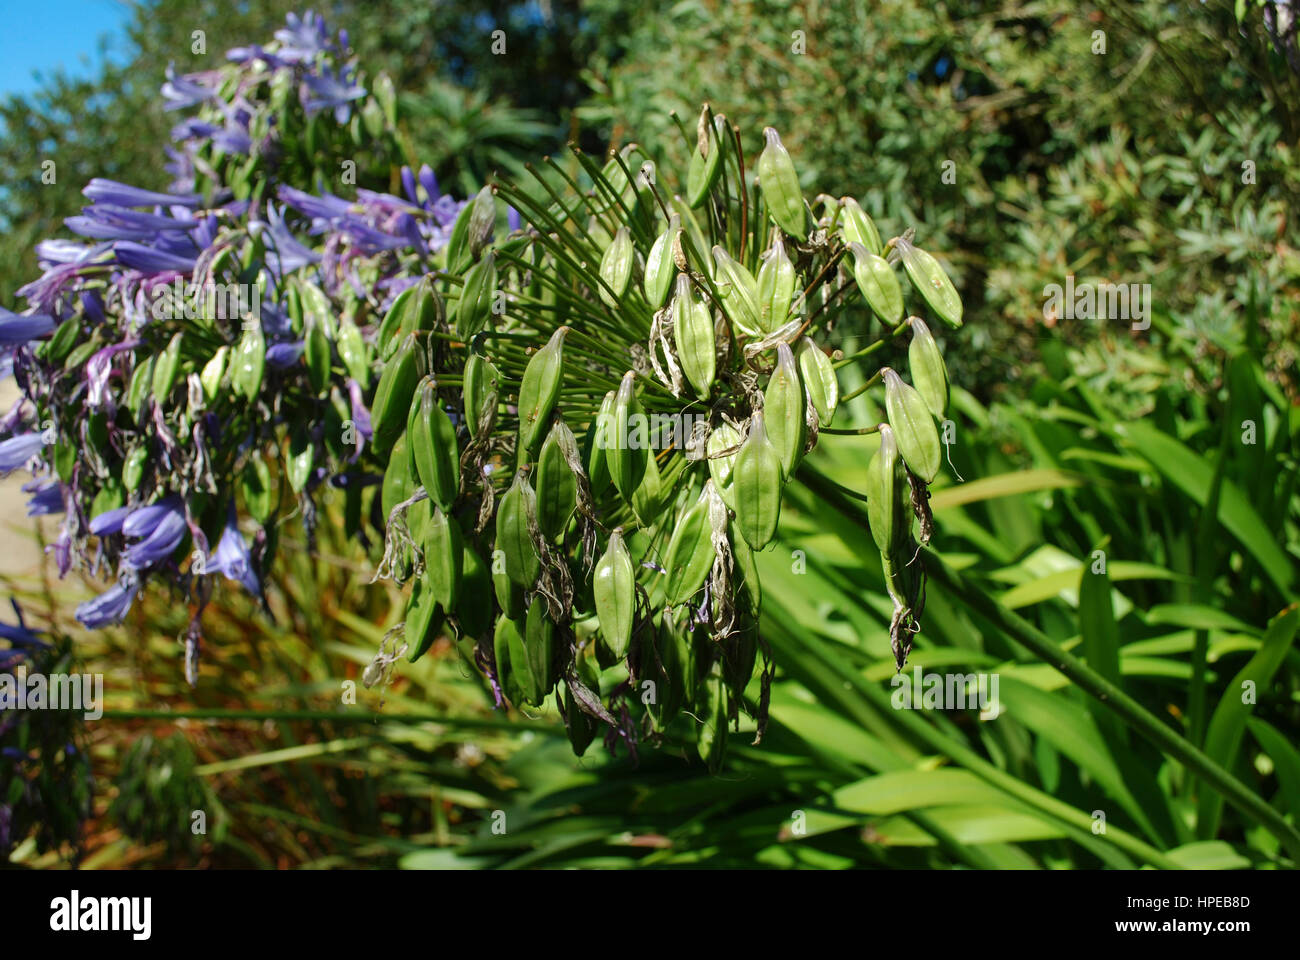 Lily of the nile agapanthus praecox subsp praecox azure bloom lily of the nile agapanthus praecox subsp praecox azure bloom blue flowers izmirmasajfo Images